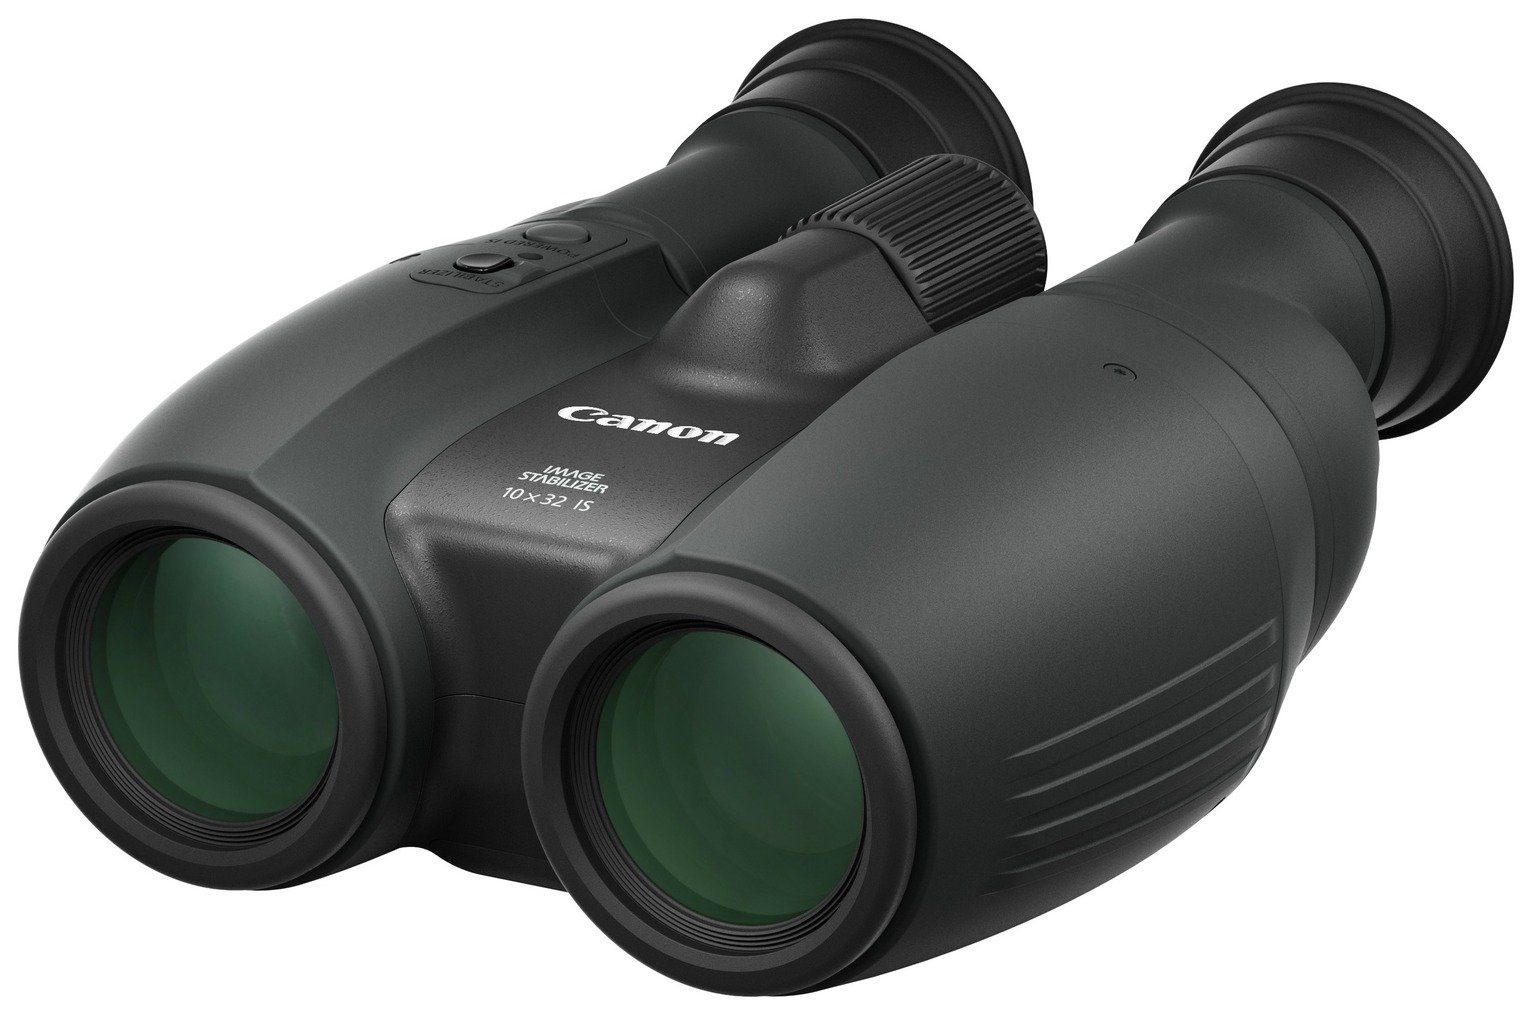 Canon 10 x 32 IS Binoculars from canon